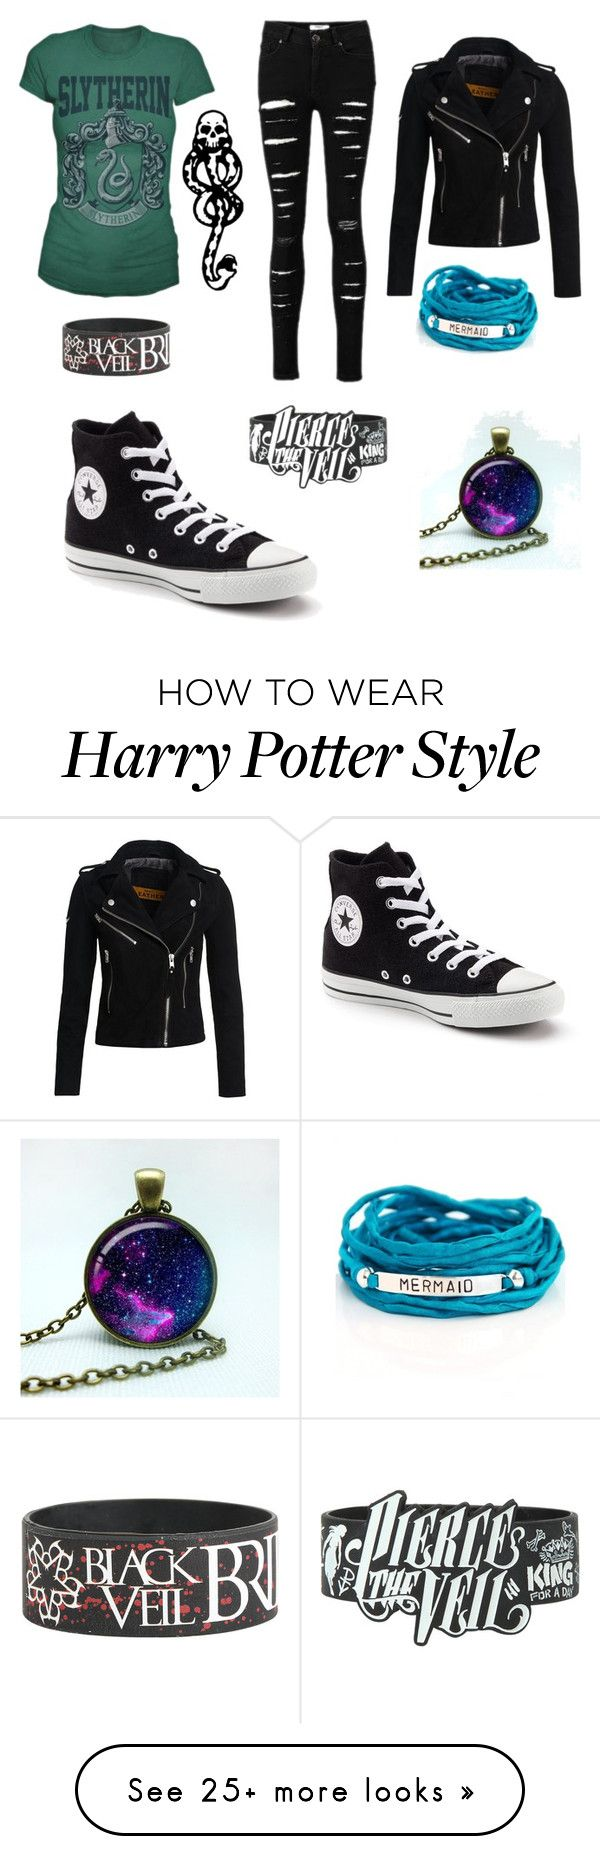 """Slytherin look"" by thatgirloverthere123 on Polyvore featuring mark., Superdry, Converse and Blooming Lotus Jewelry"